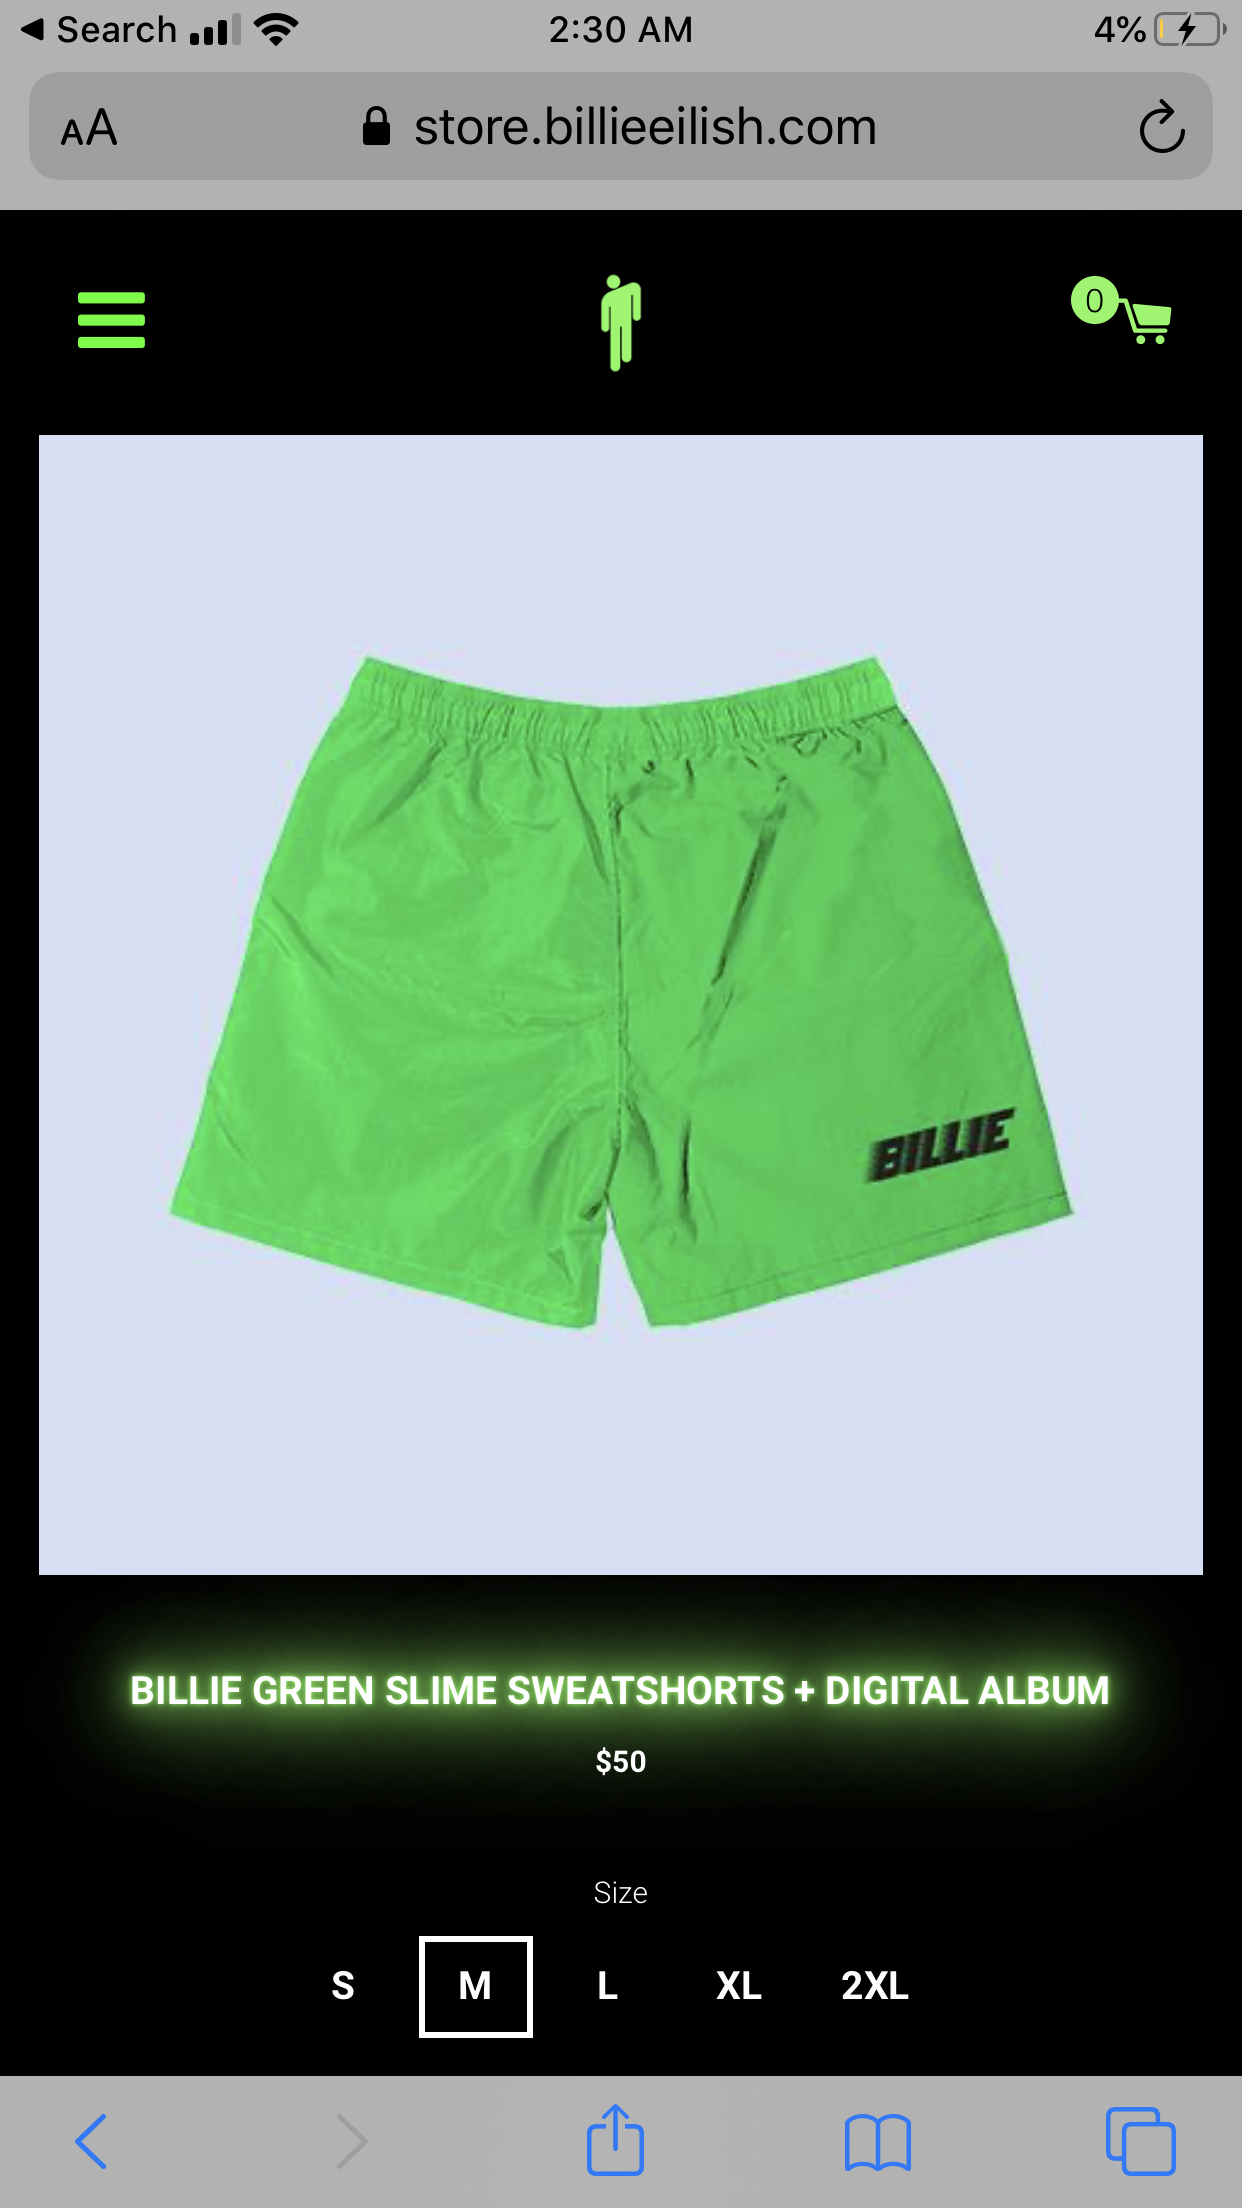 Billie Green Slime Sweatshorts Digital Album Billie Eilish Store Billie Album Billie Eilish